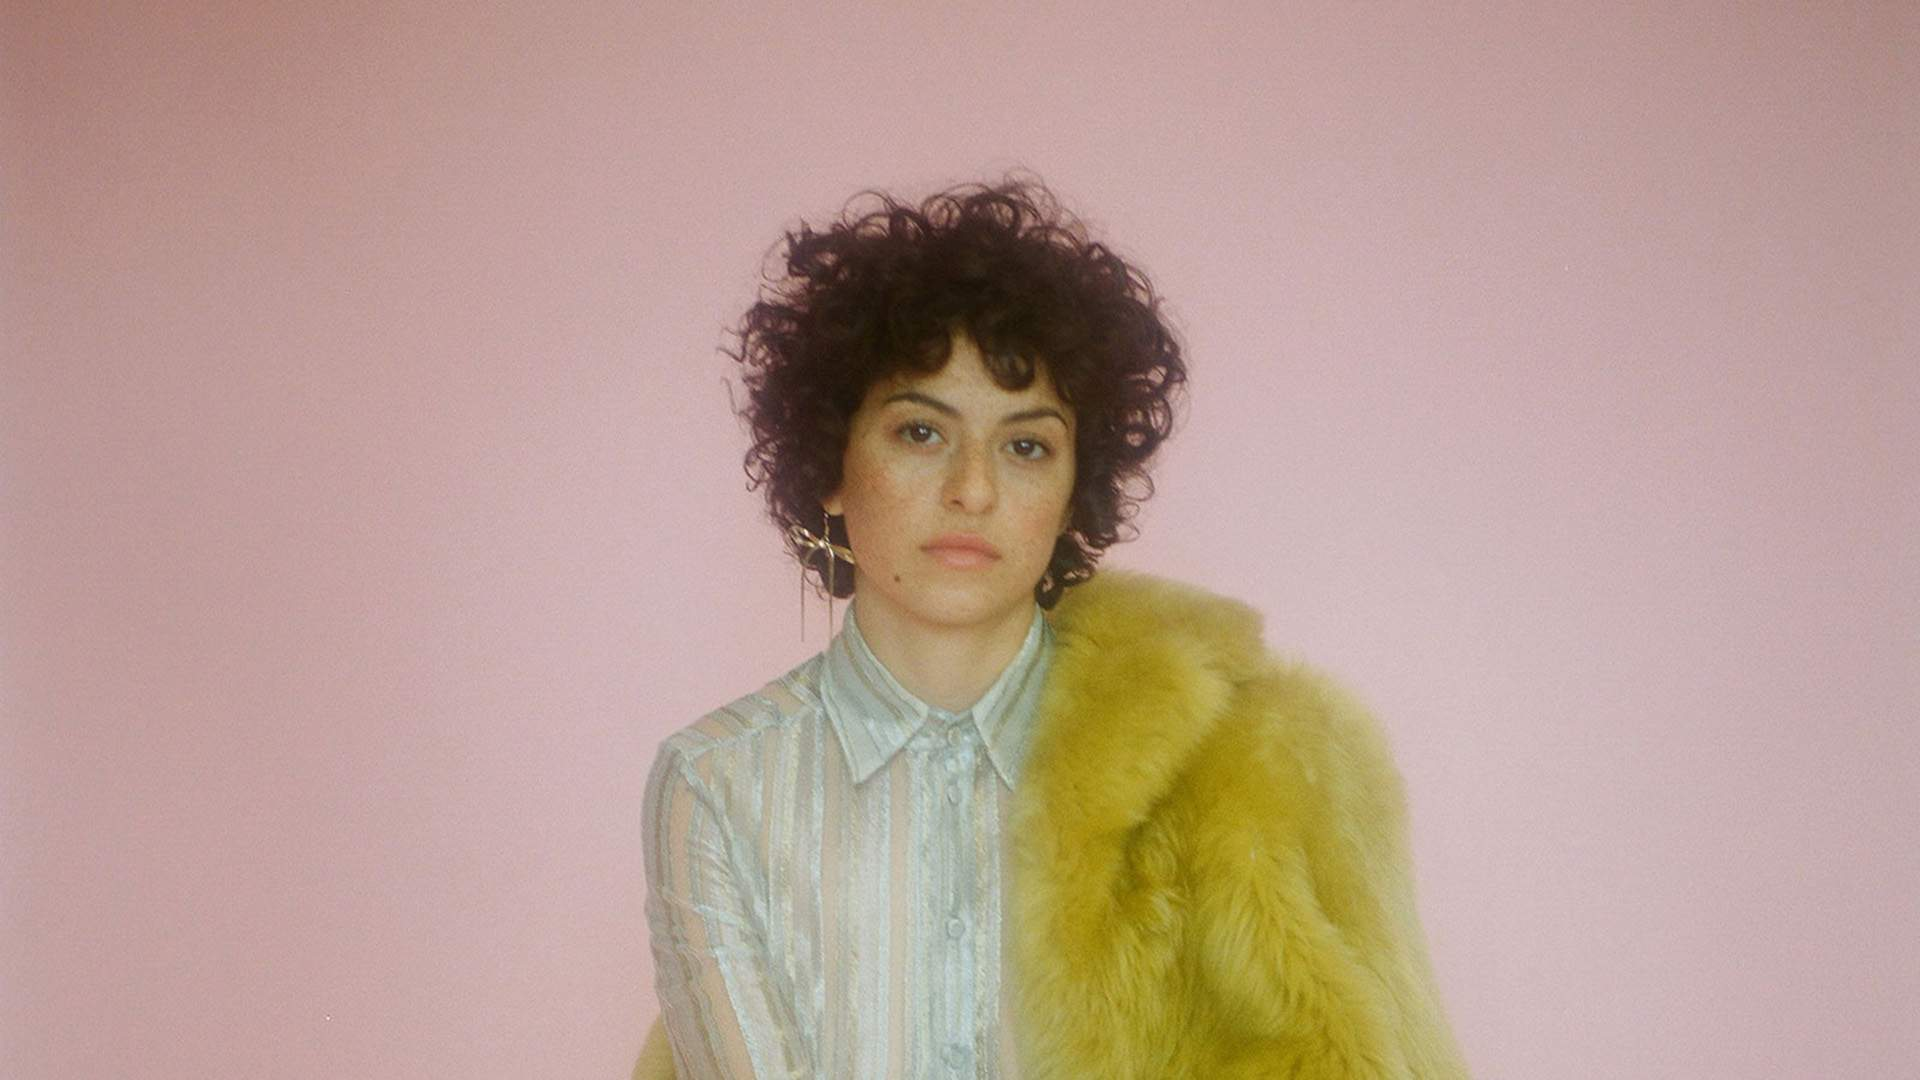 Arrested Development's Alia Shawkat Is Coming to Melbourne for a One-Off Talk